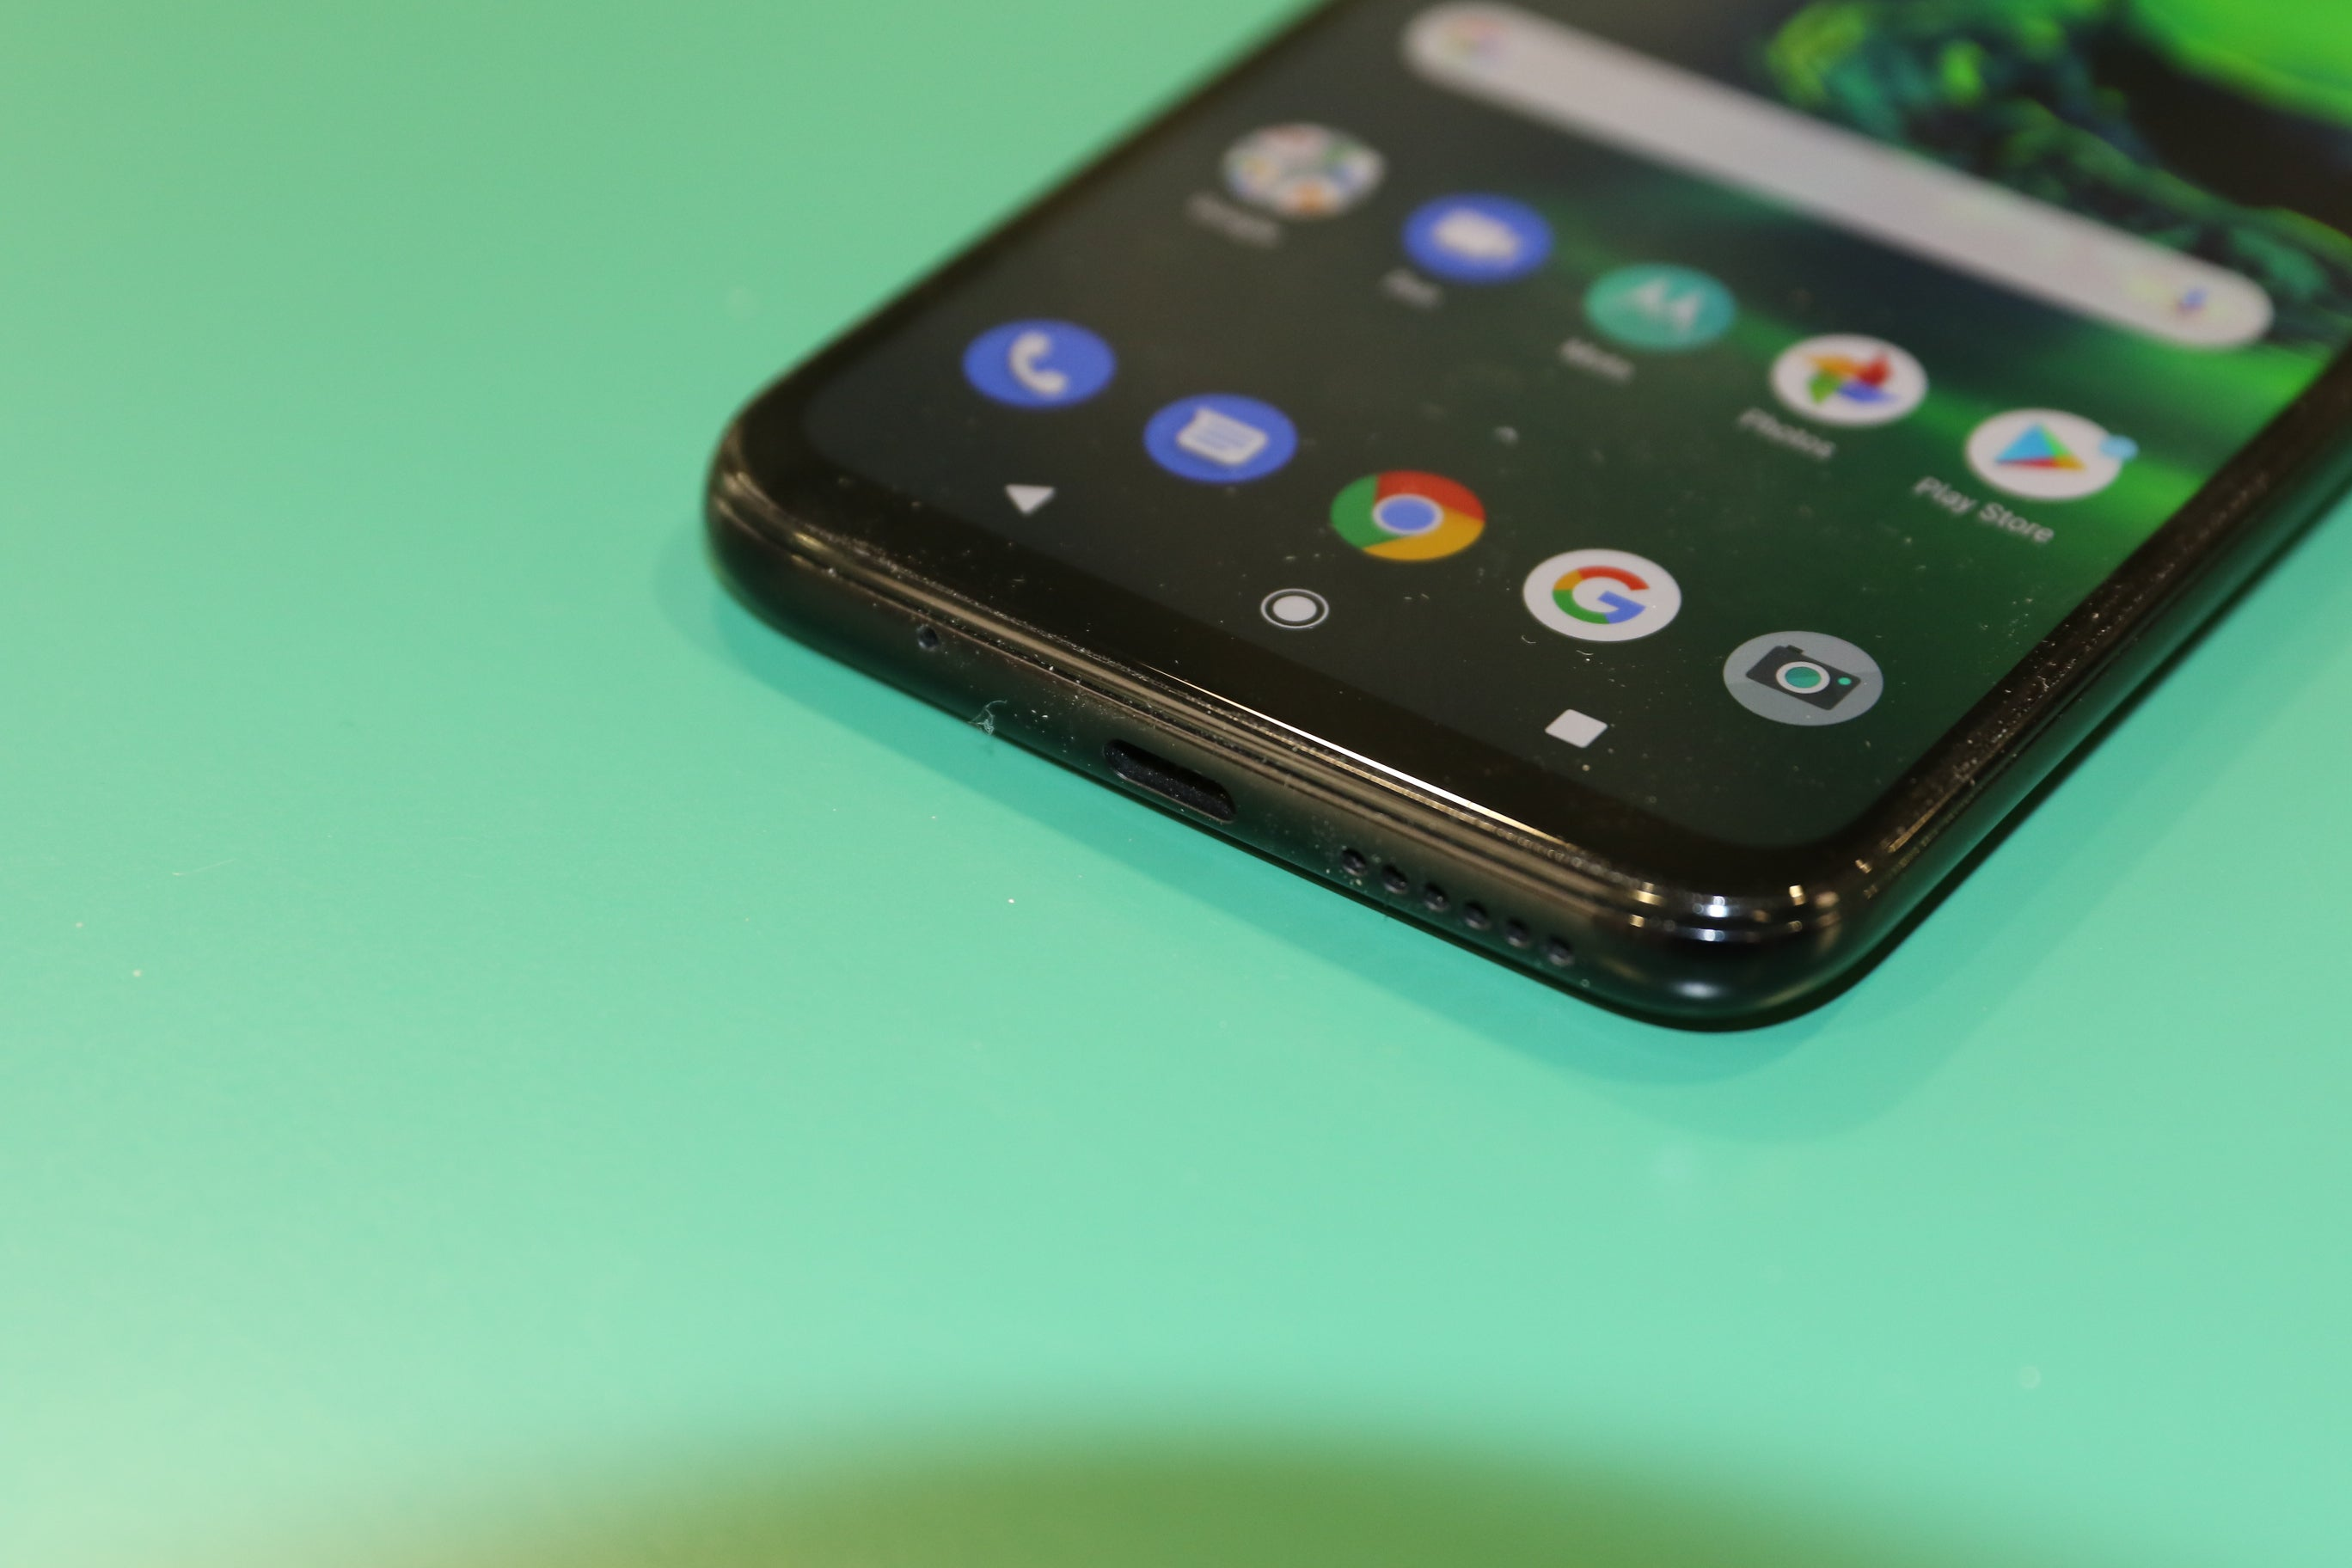 Moto G8 Power tipped to have giant 5,000mAh battery